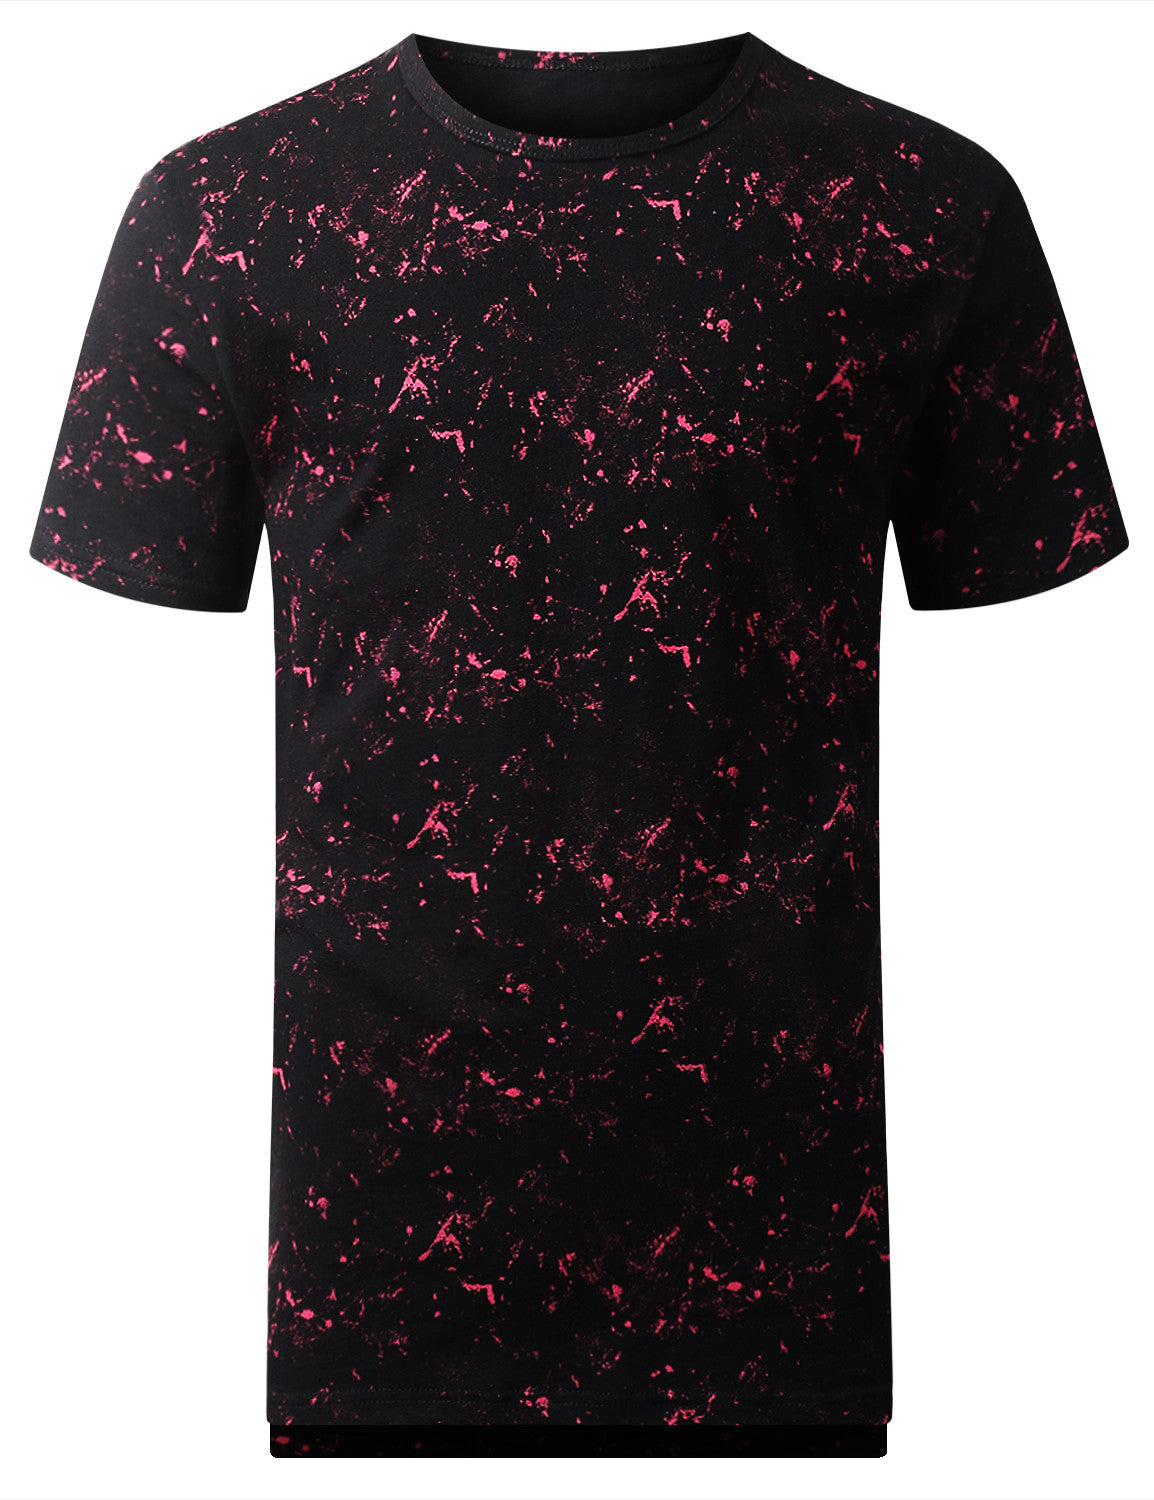 MAGENTA Tied Wash Longline T-shirt - URBANCREWS